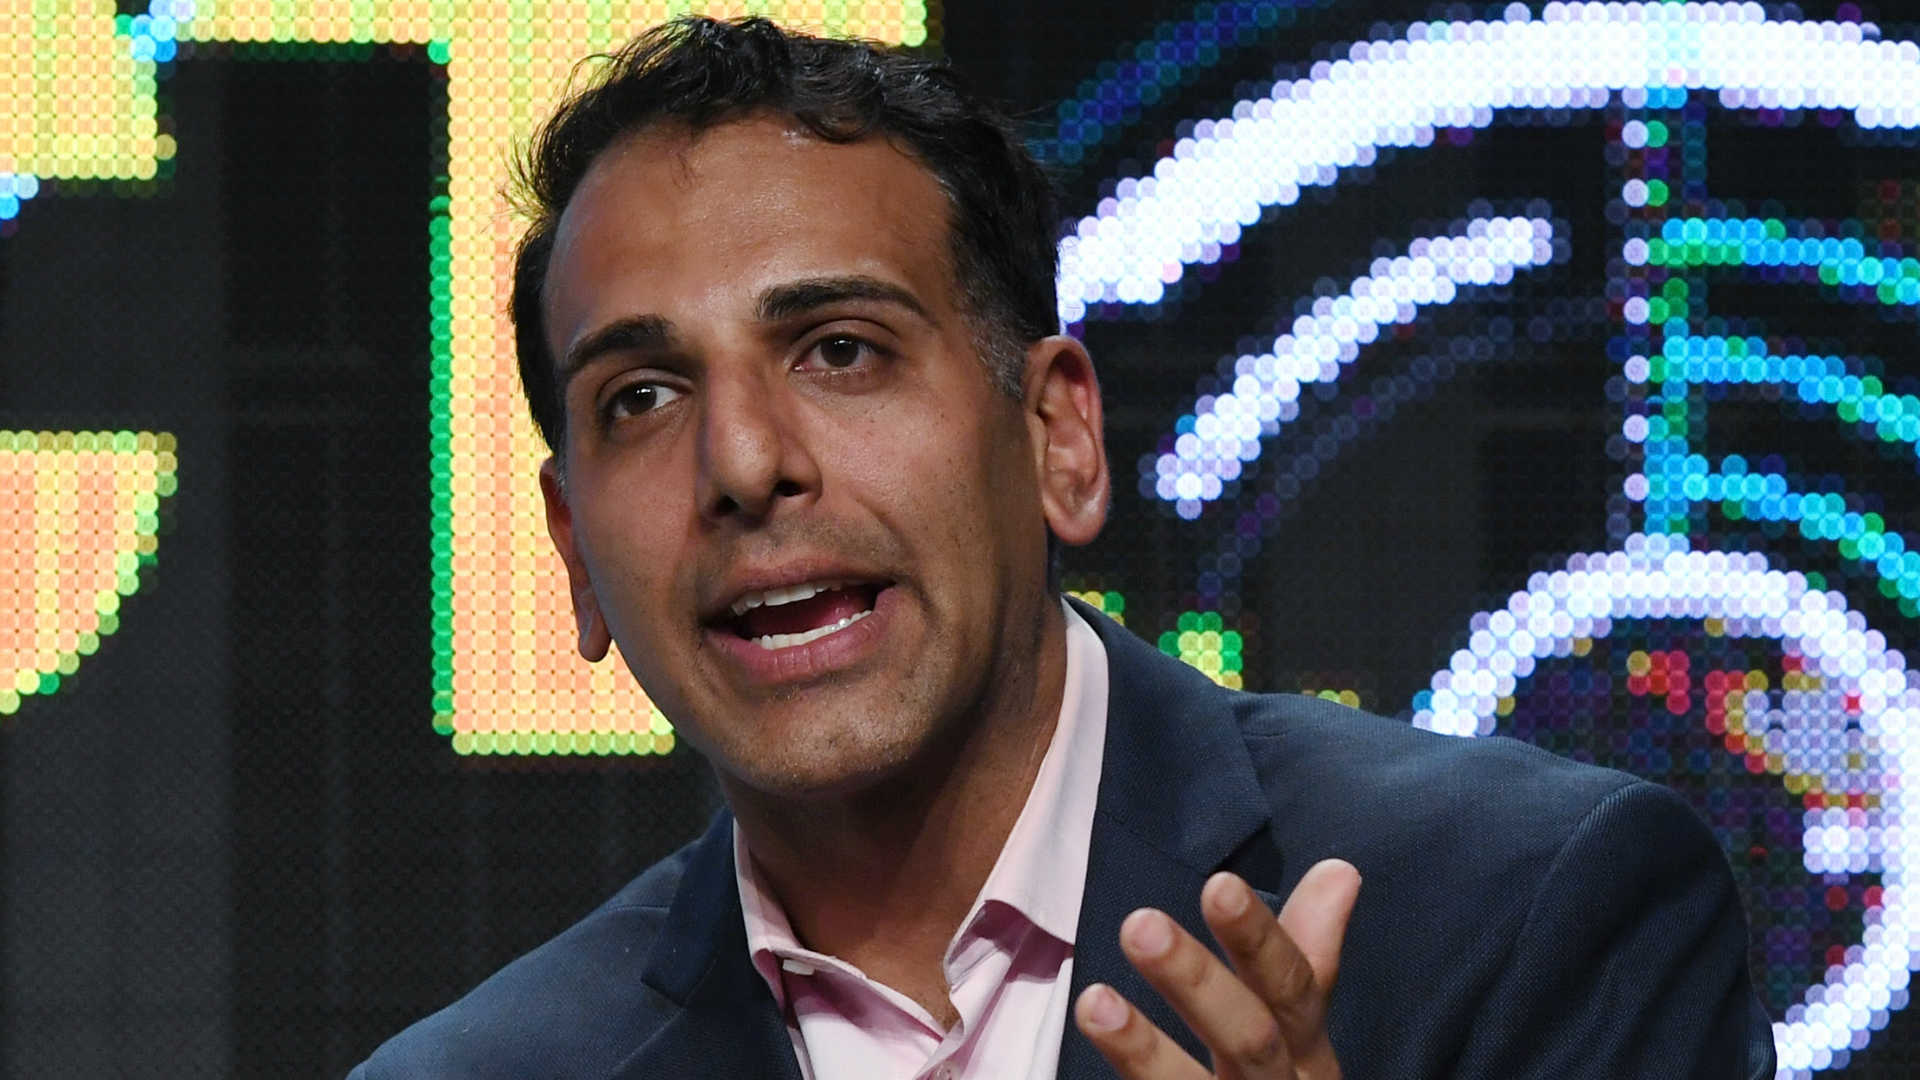 Rising ESPN star Adnan Virk fired, escorted out in leak investigation